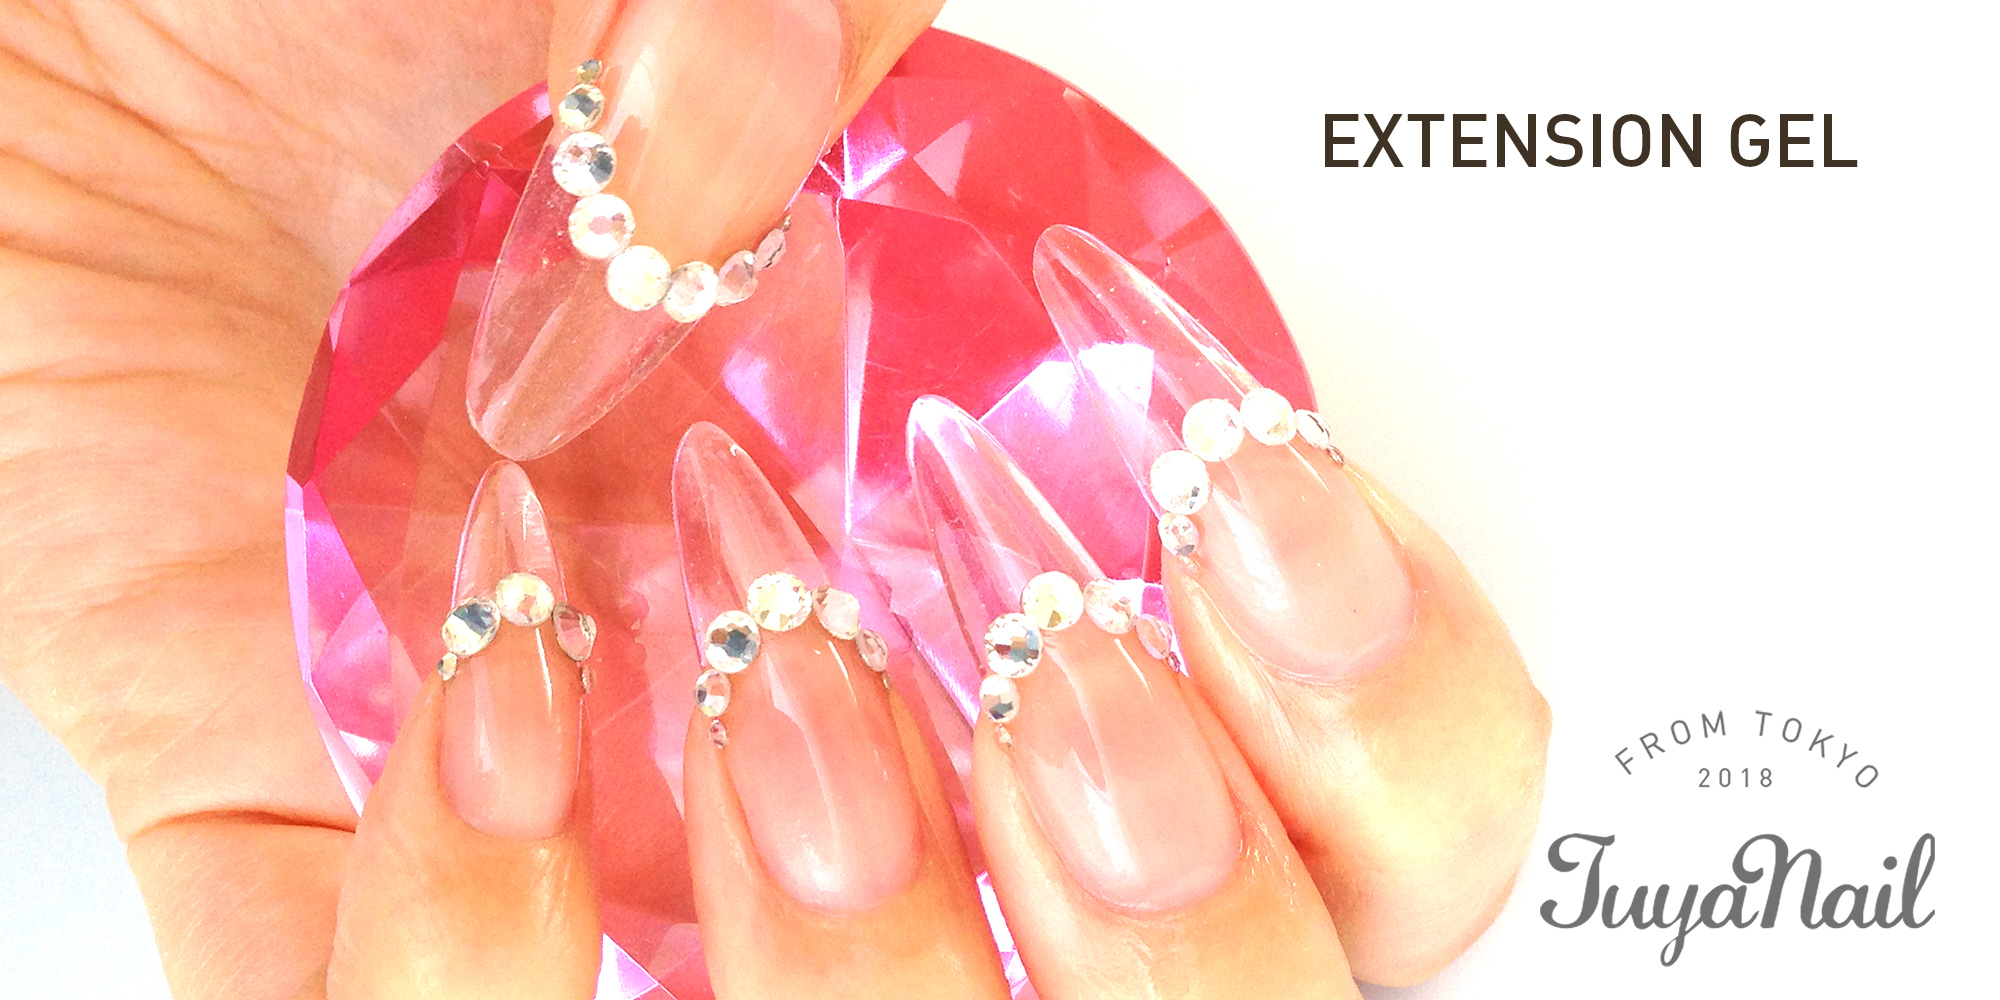 EXTENSION GEL